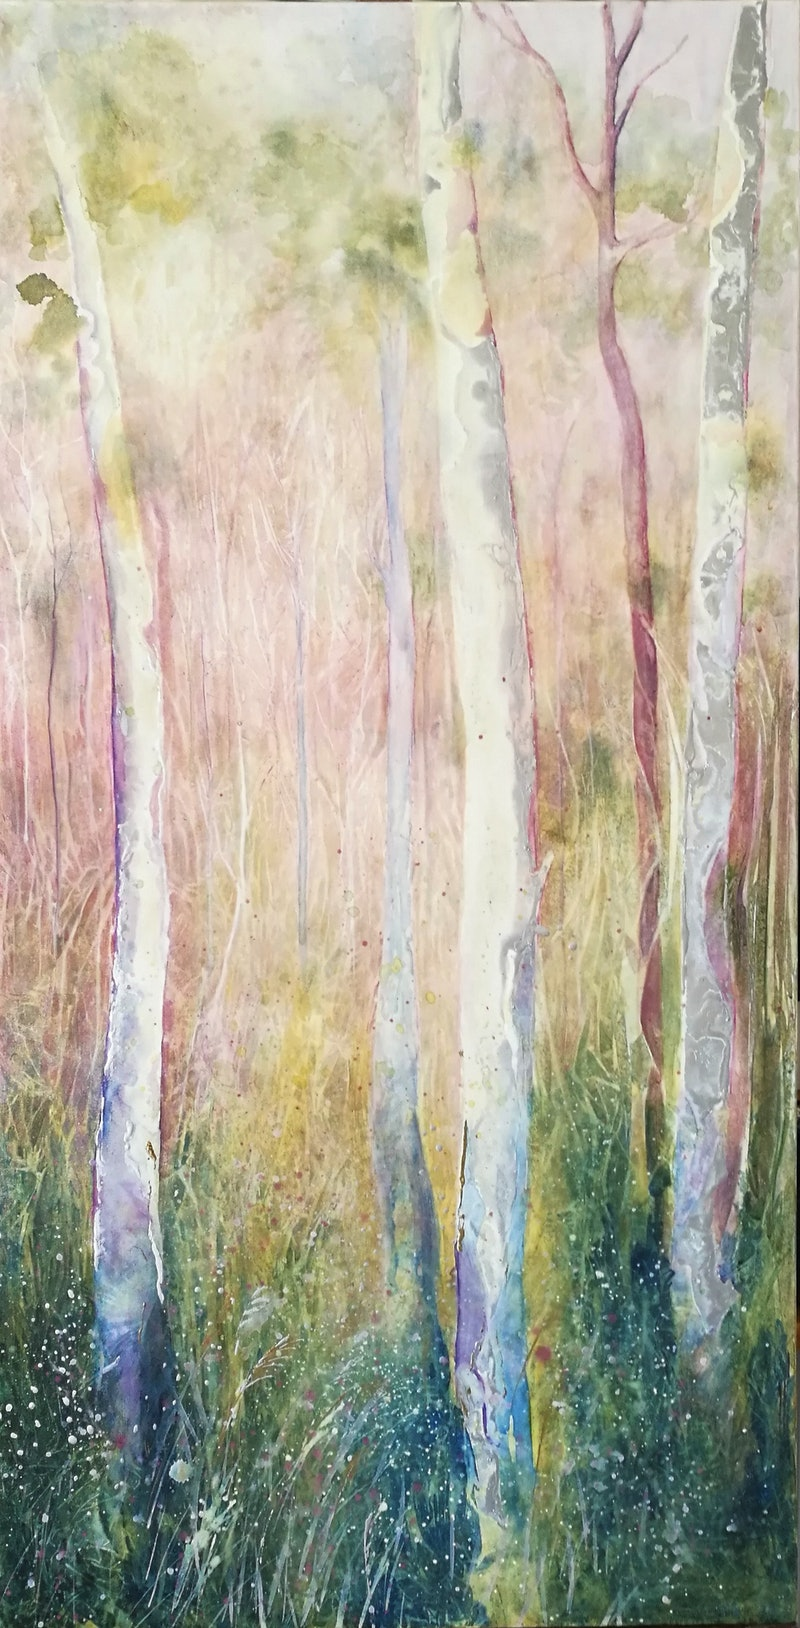 Greet the day by lucinda leveille paintings for sale bluethumb shop online at bluethumb creativework greet the day by lucinda leveille watercolour shop online at bluethumb m4hsunfo